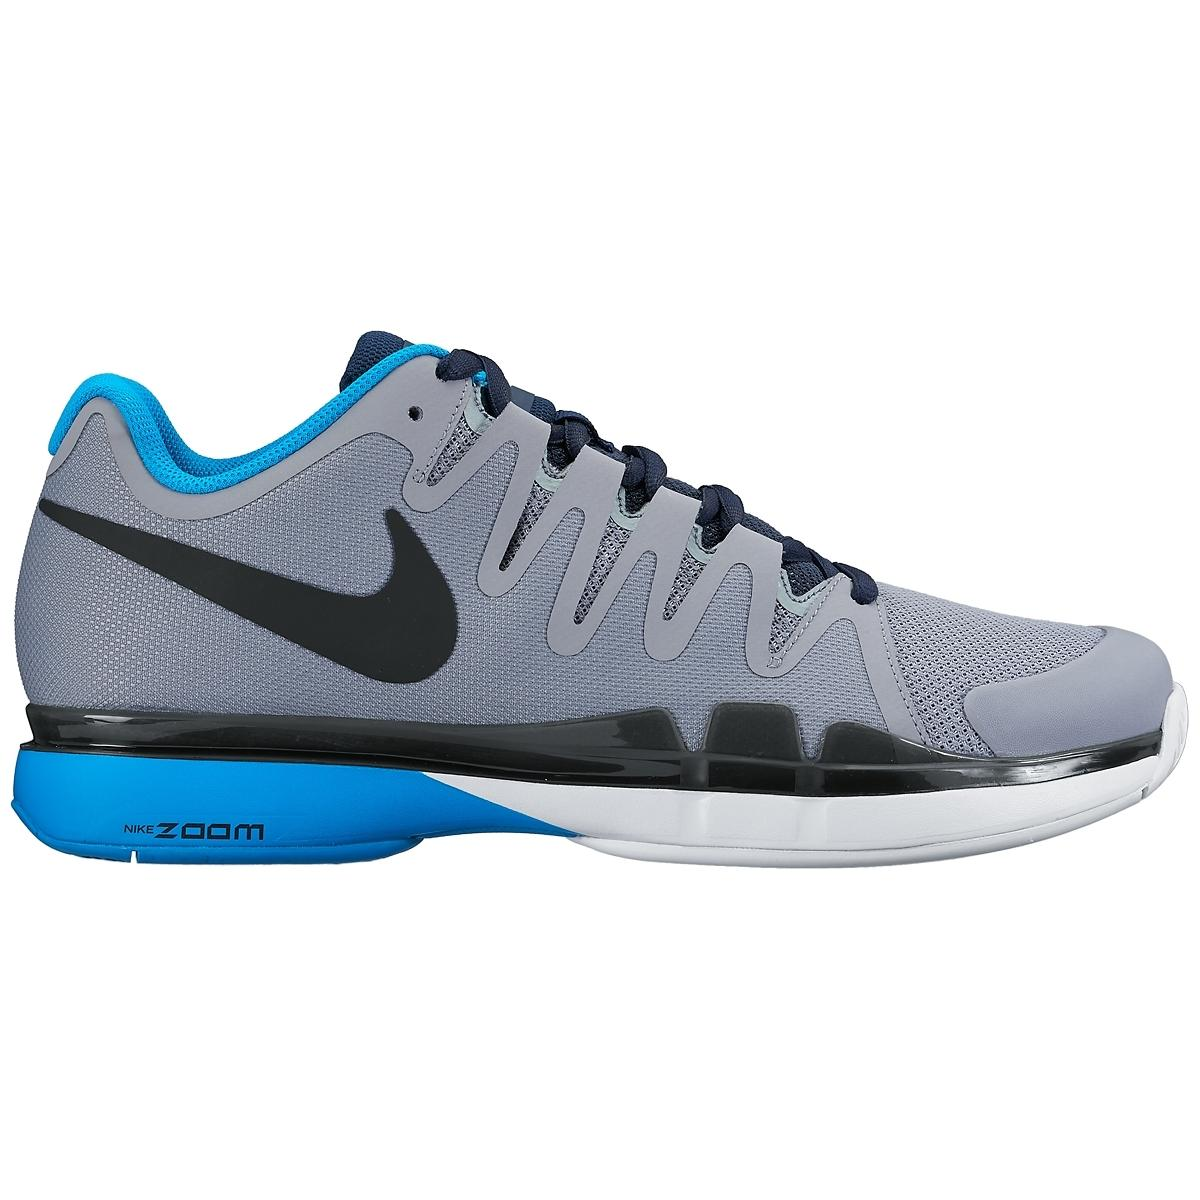 on sale 88d75 db286 chaussures hommes nike zoom vapor 9